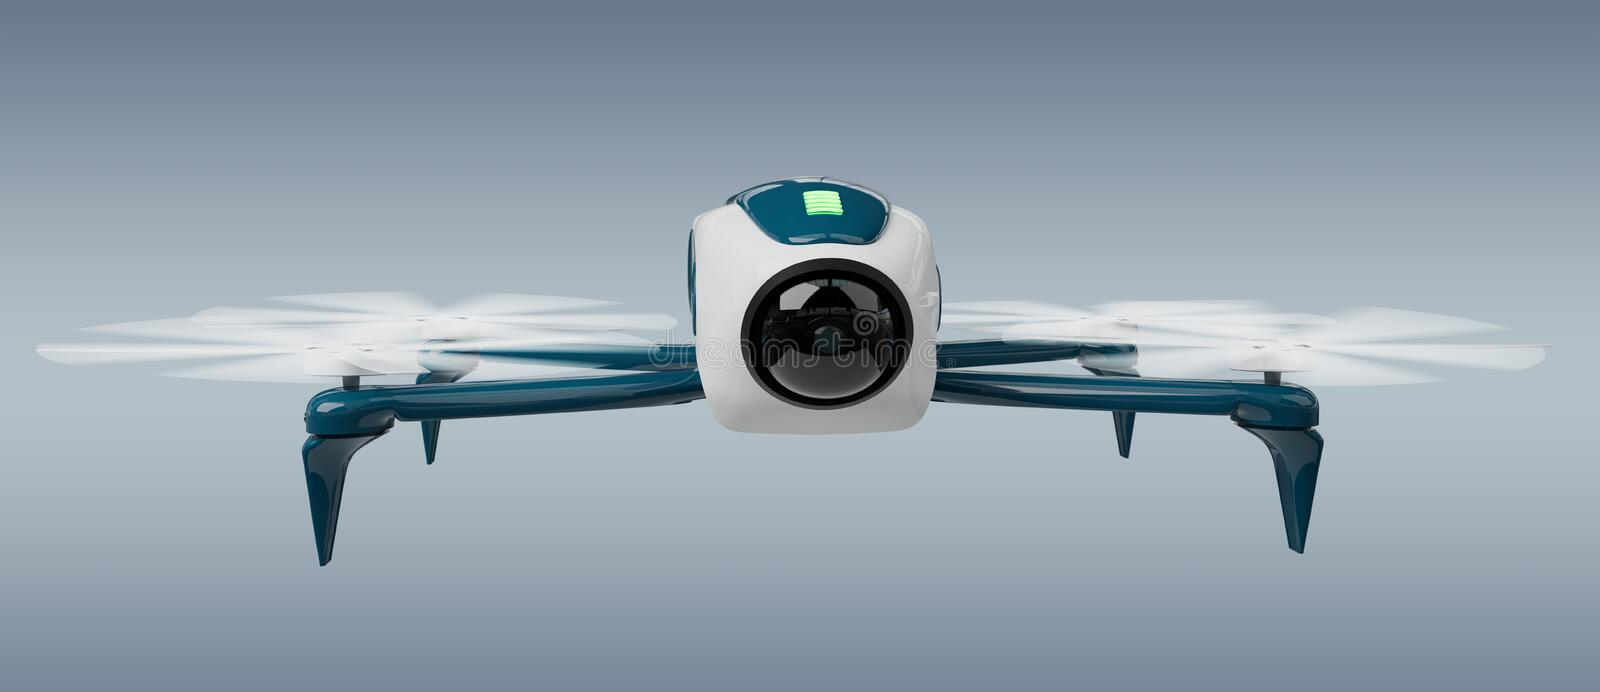 Modern drone 3D rendering royalty free illustration